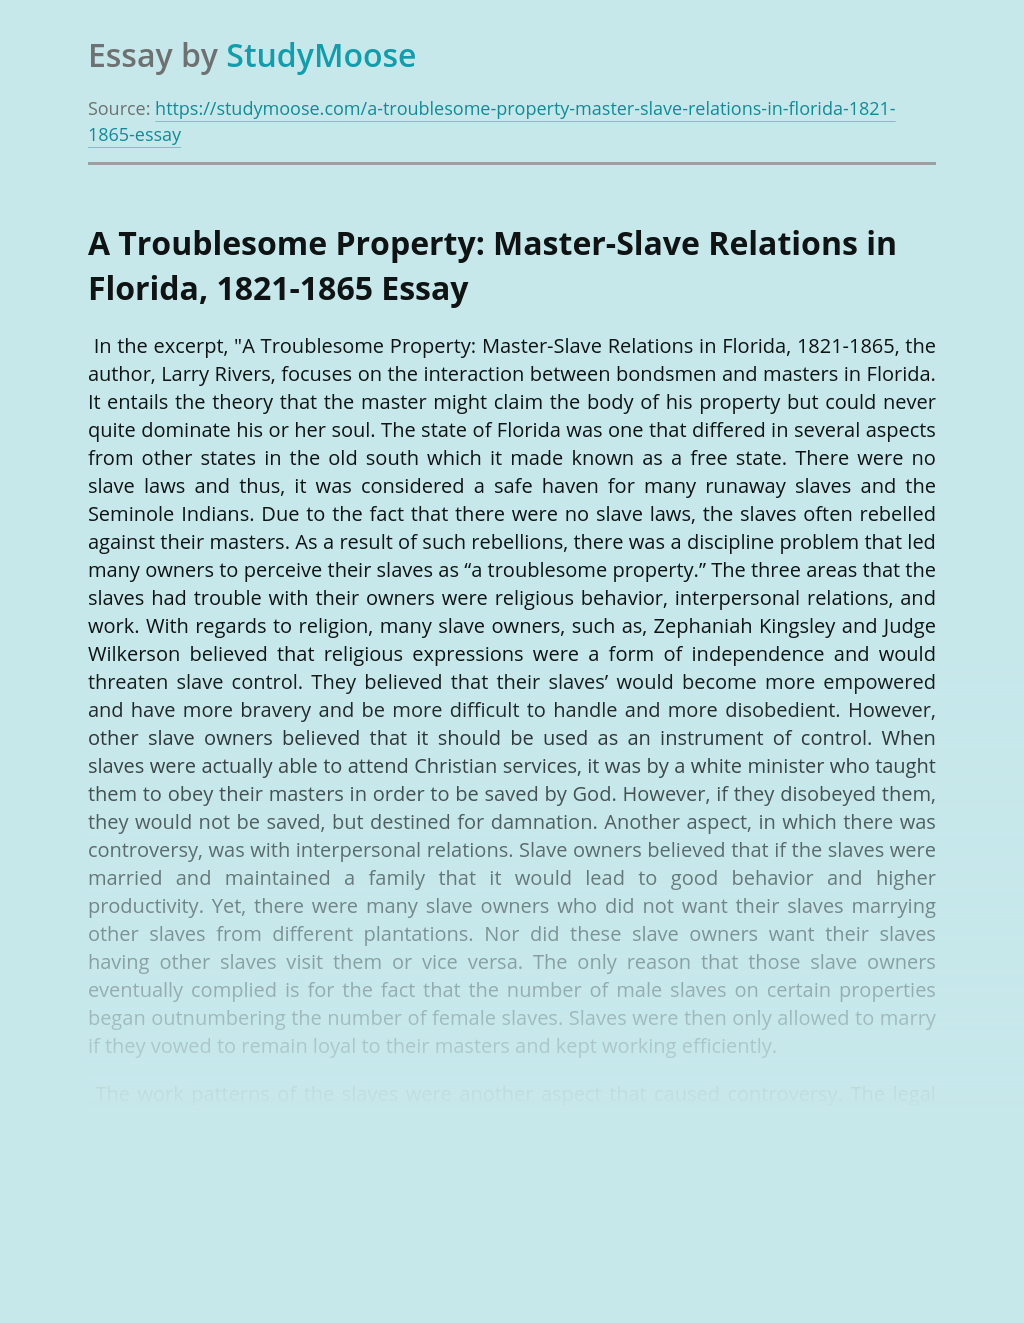 Problem of Slavery in A Troublesome Property